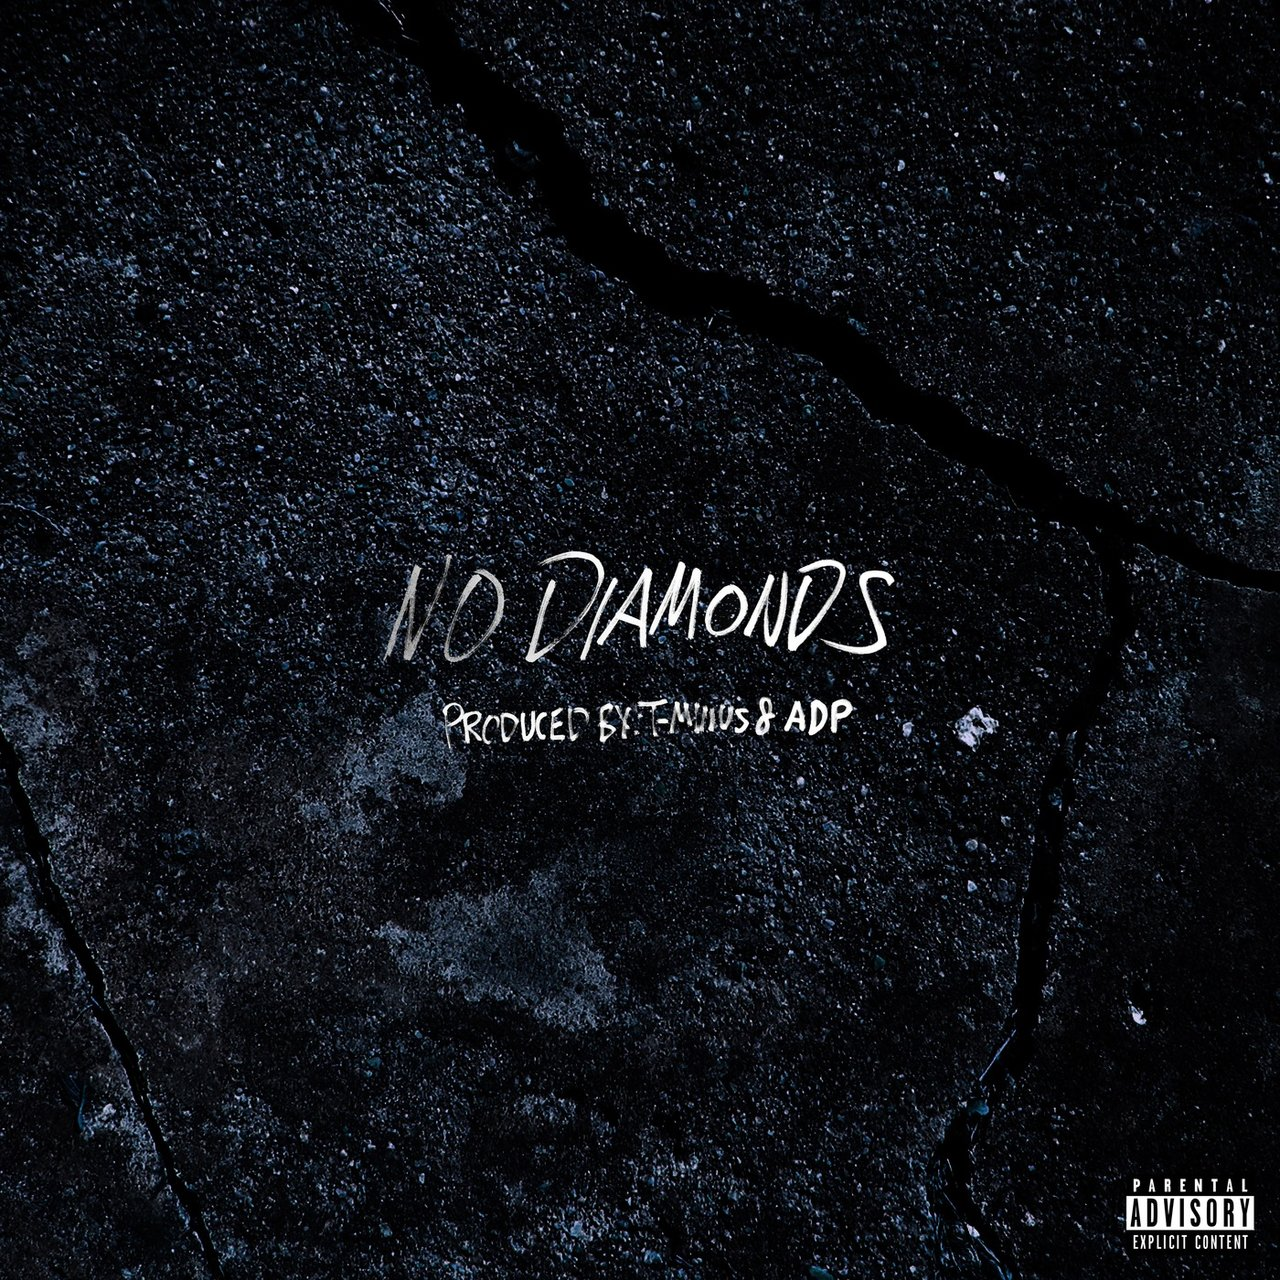 No Diamonds